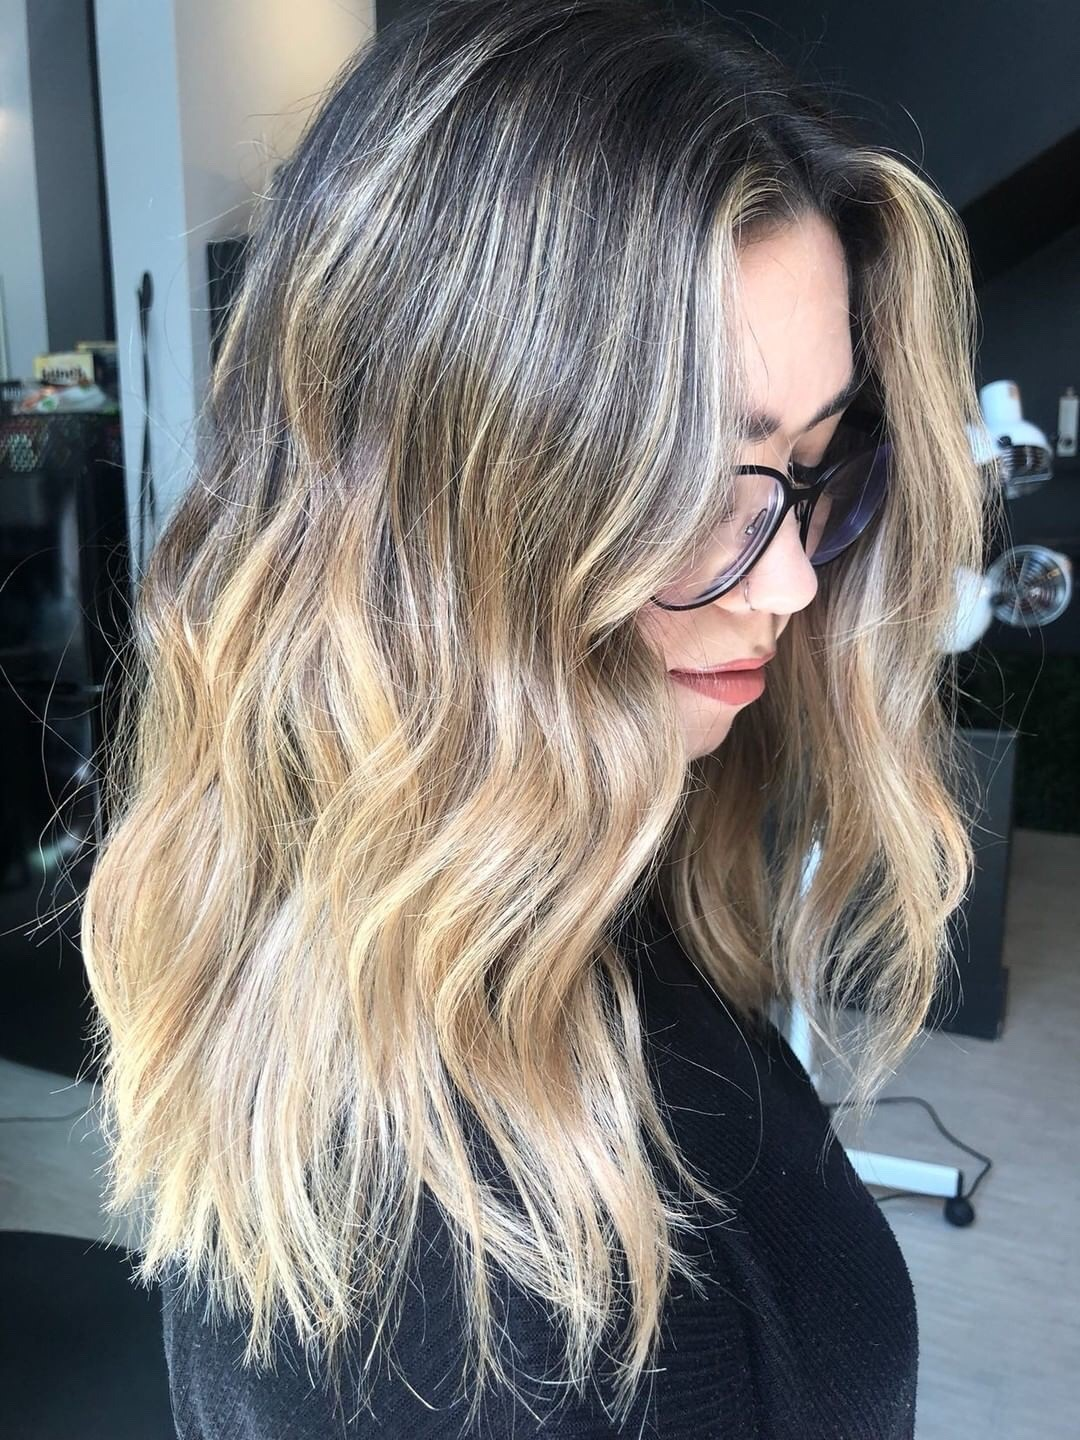 How to Create Lived-In Beach Waves